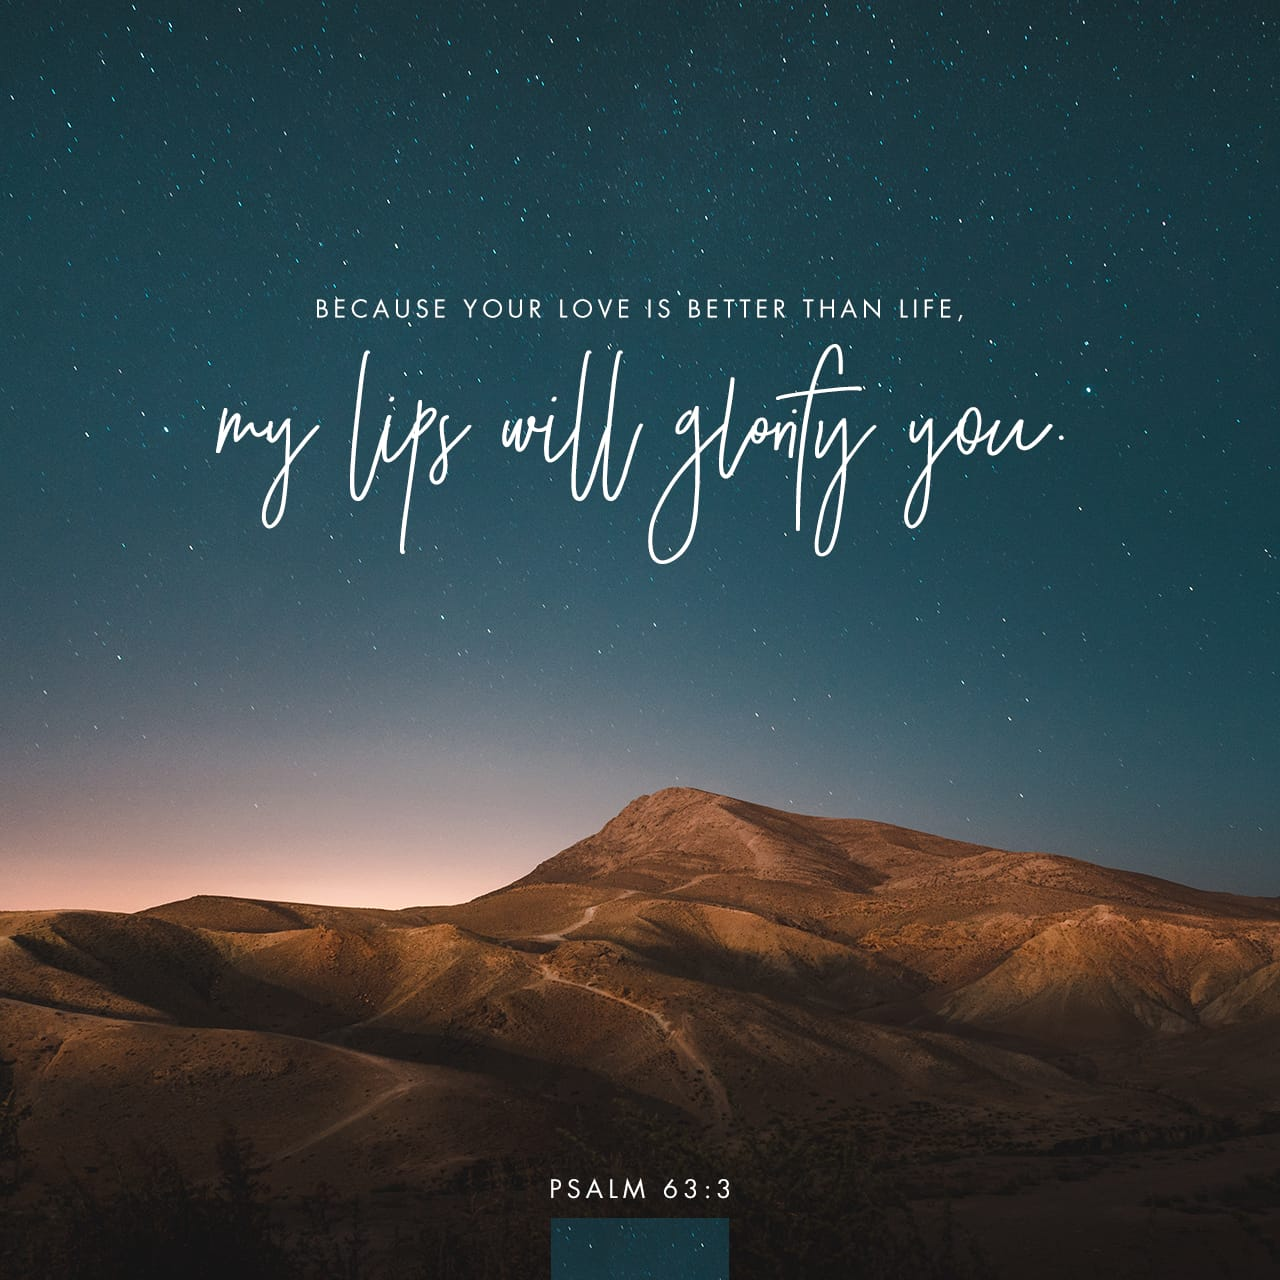 Psalms 63:3-4 Because Your lovingkindness is better than life, My lips will praise You. So I will bless You as long as I live; I will lift up my hands in Your name.